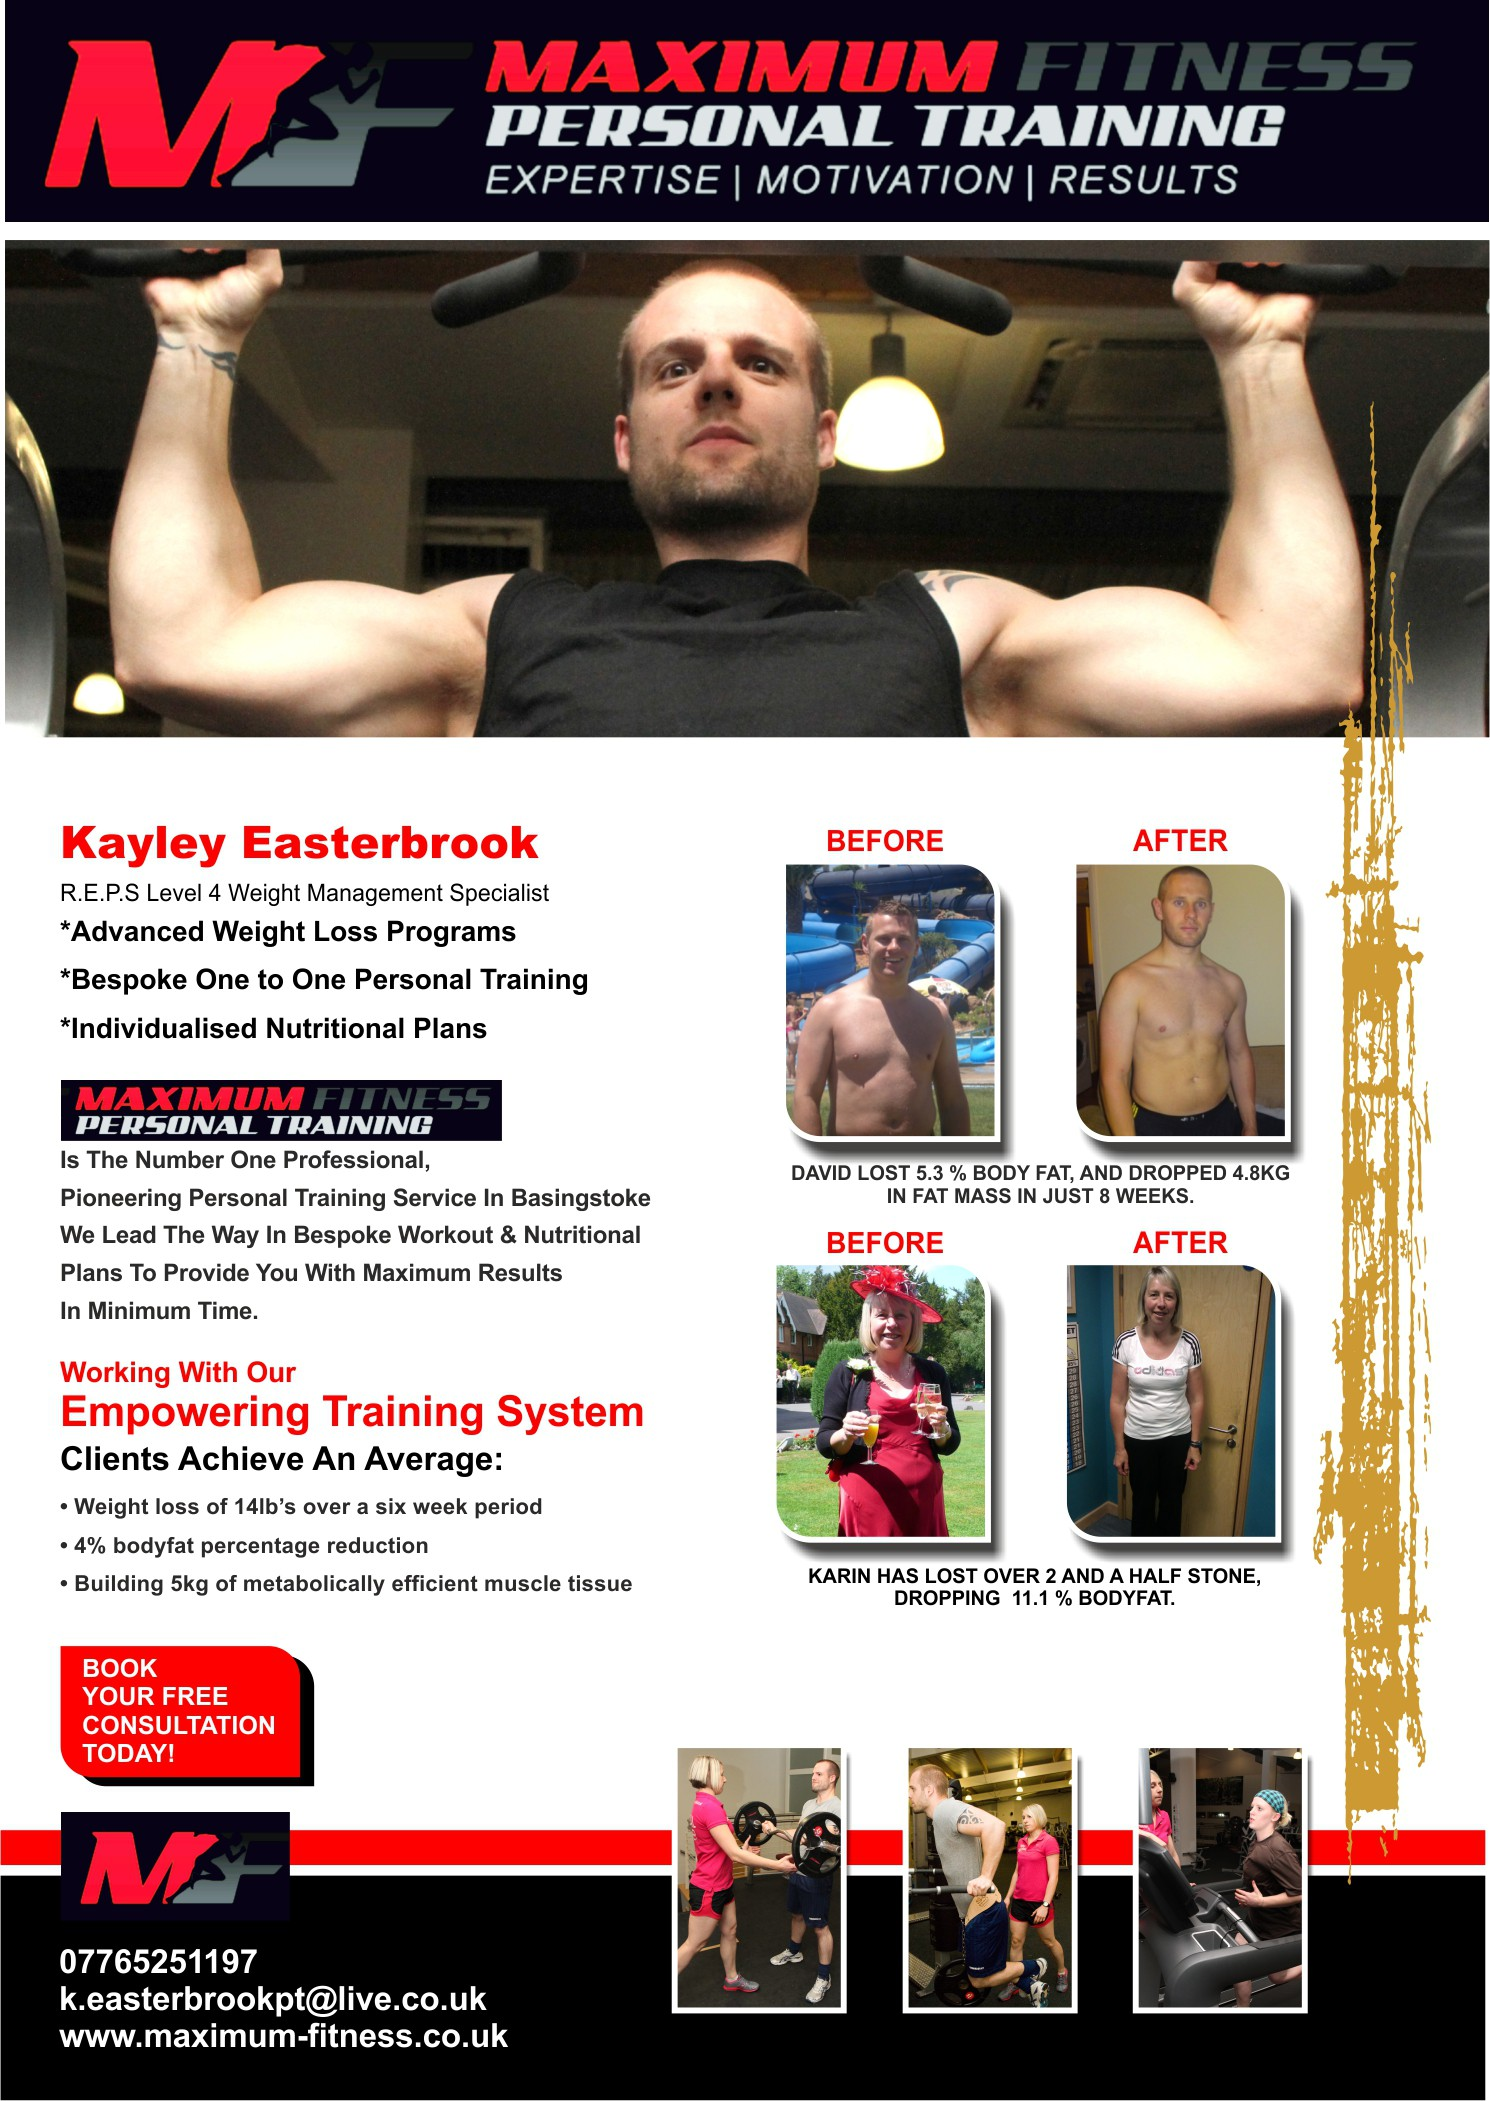 New stationery wanted for Maximum Fitness Personal Training